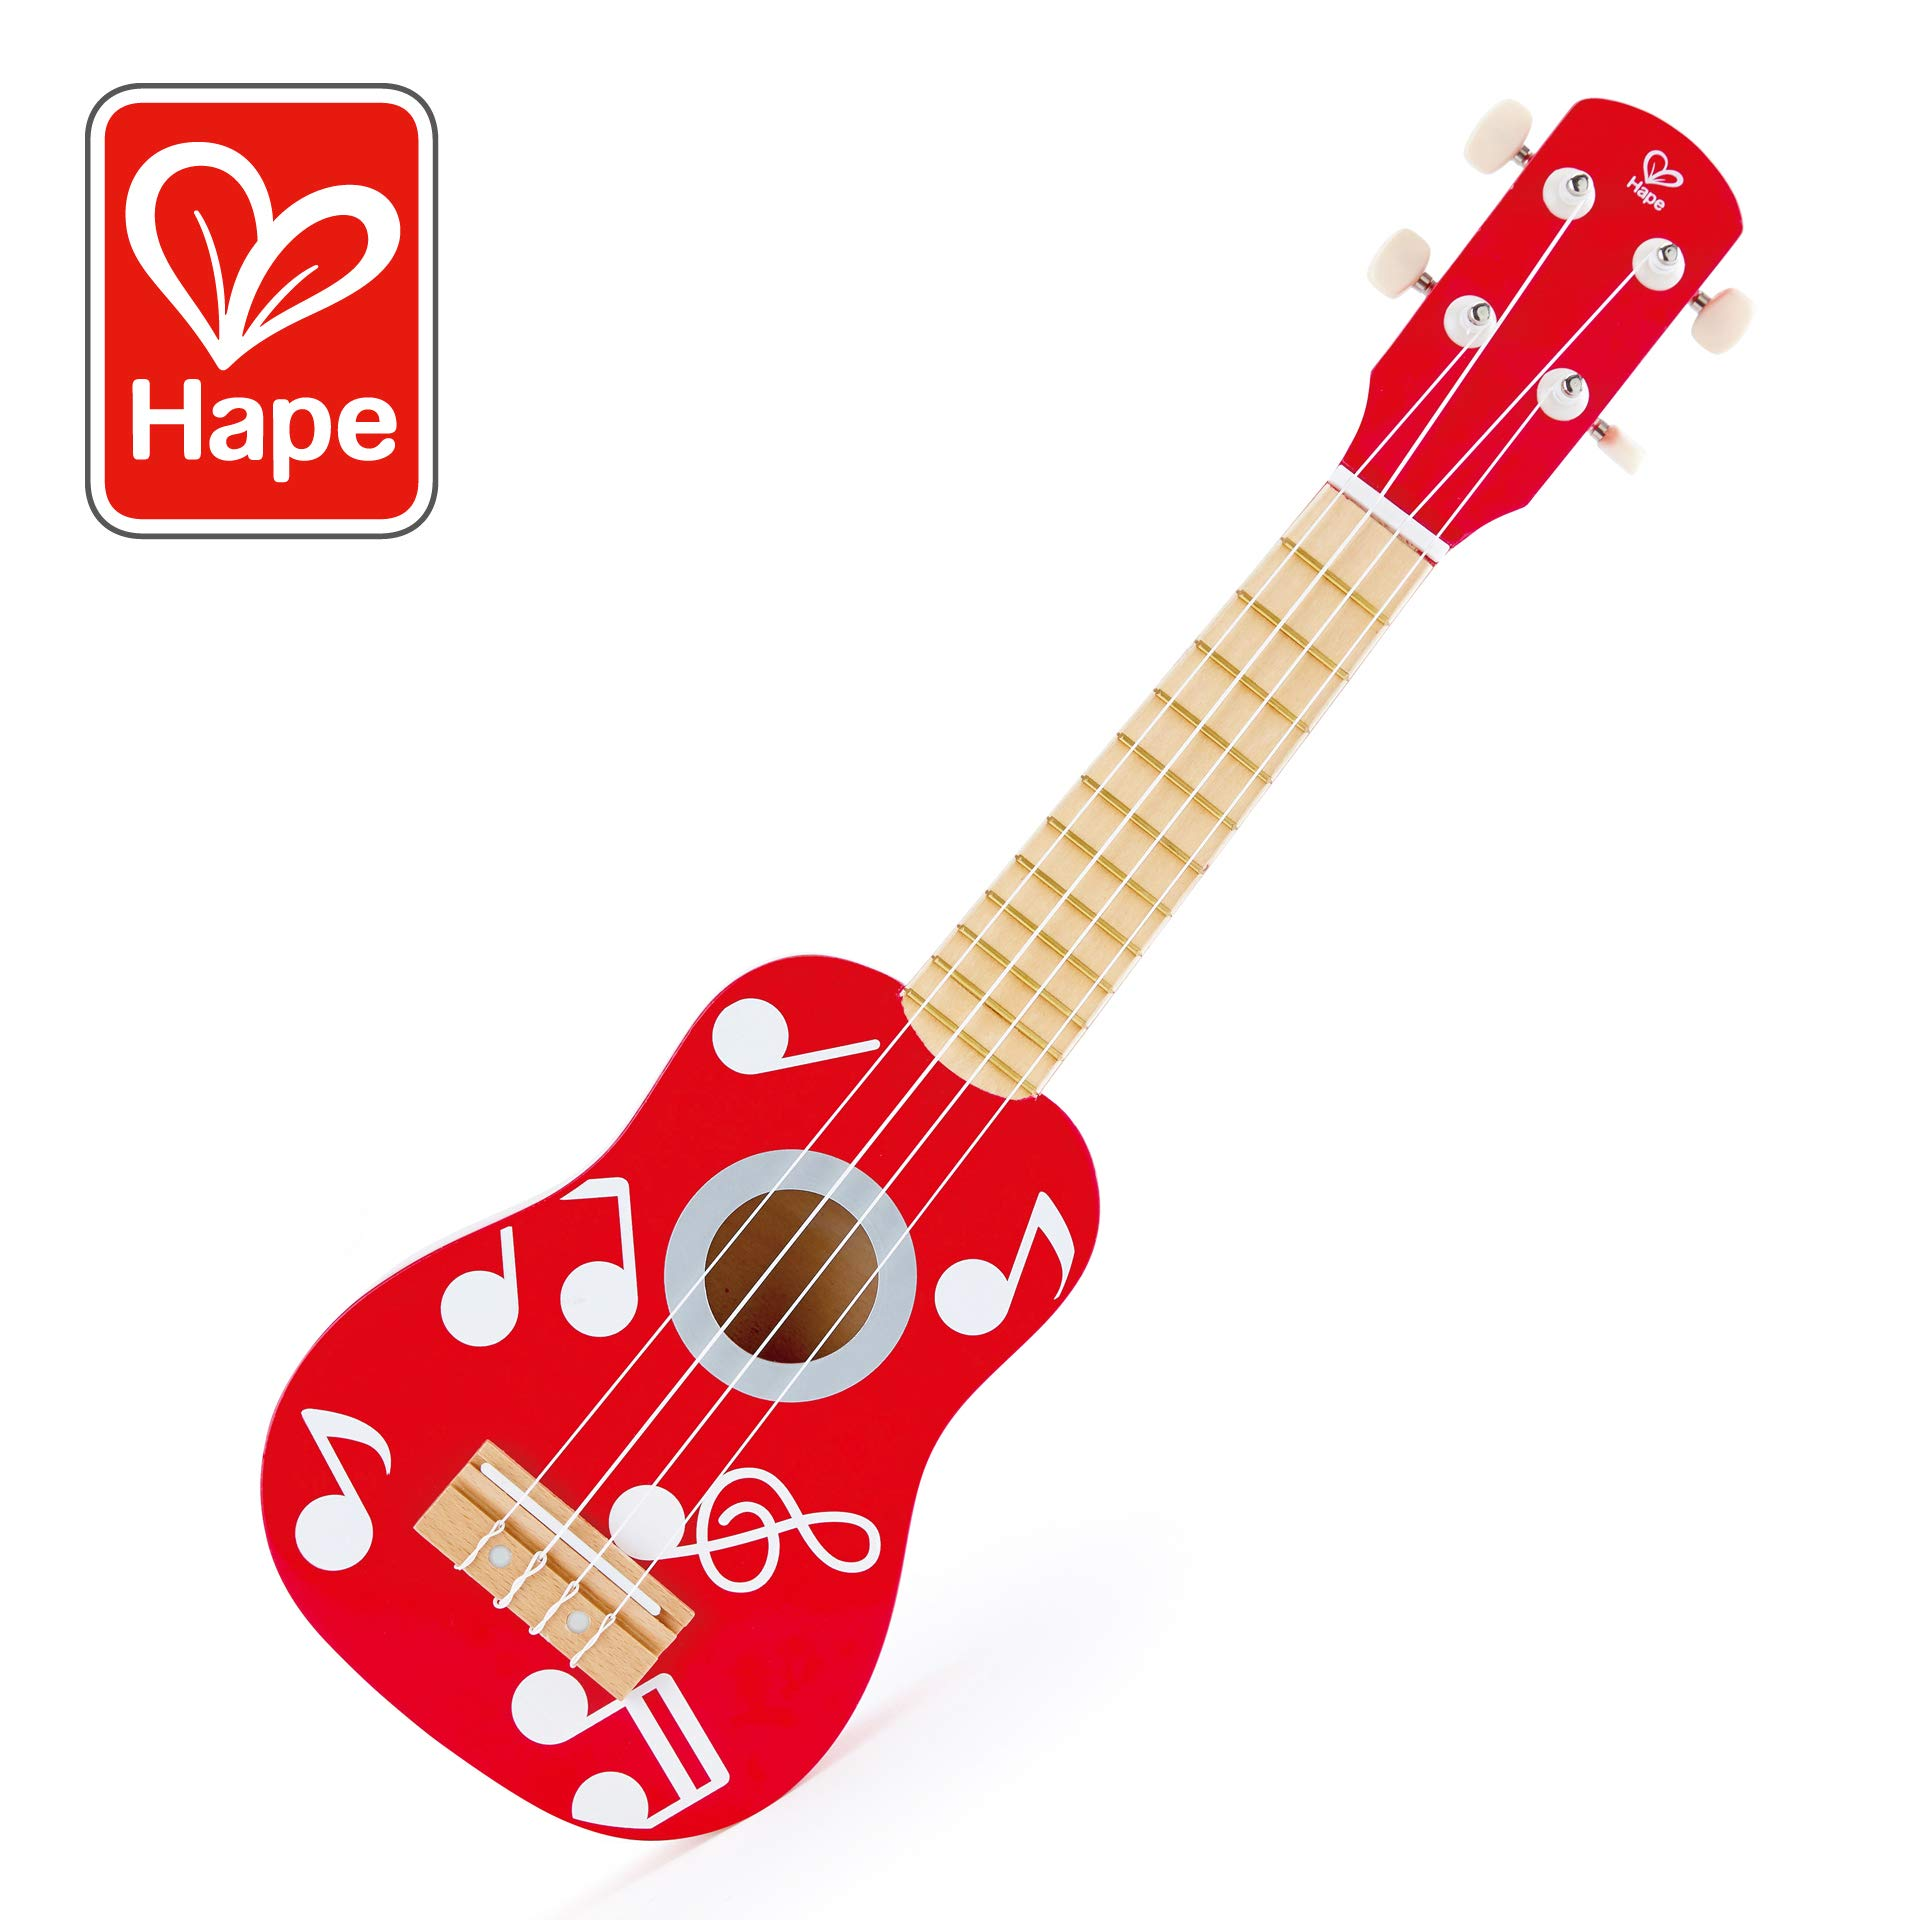 Hape Kid's Wooden Toy Ukulele | 21 Inch Musical Instrument with Vibrant Sound and Tunable Nylon Strings, Red by Hape